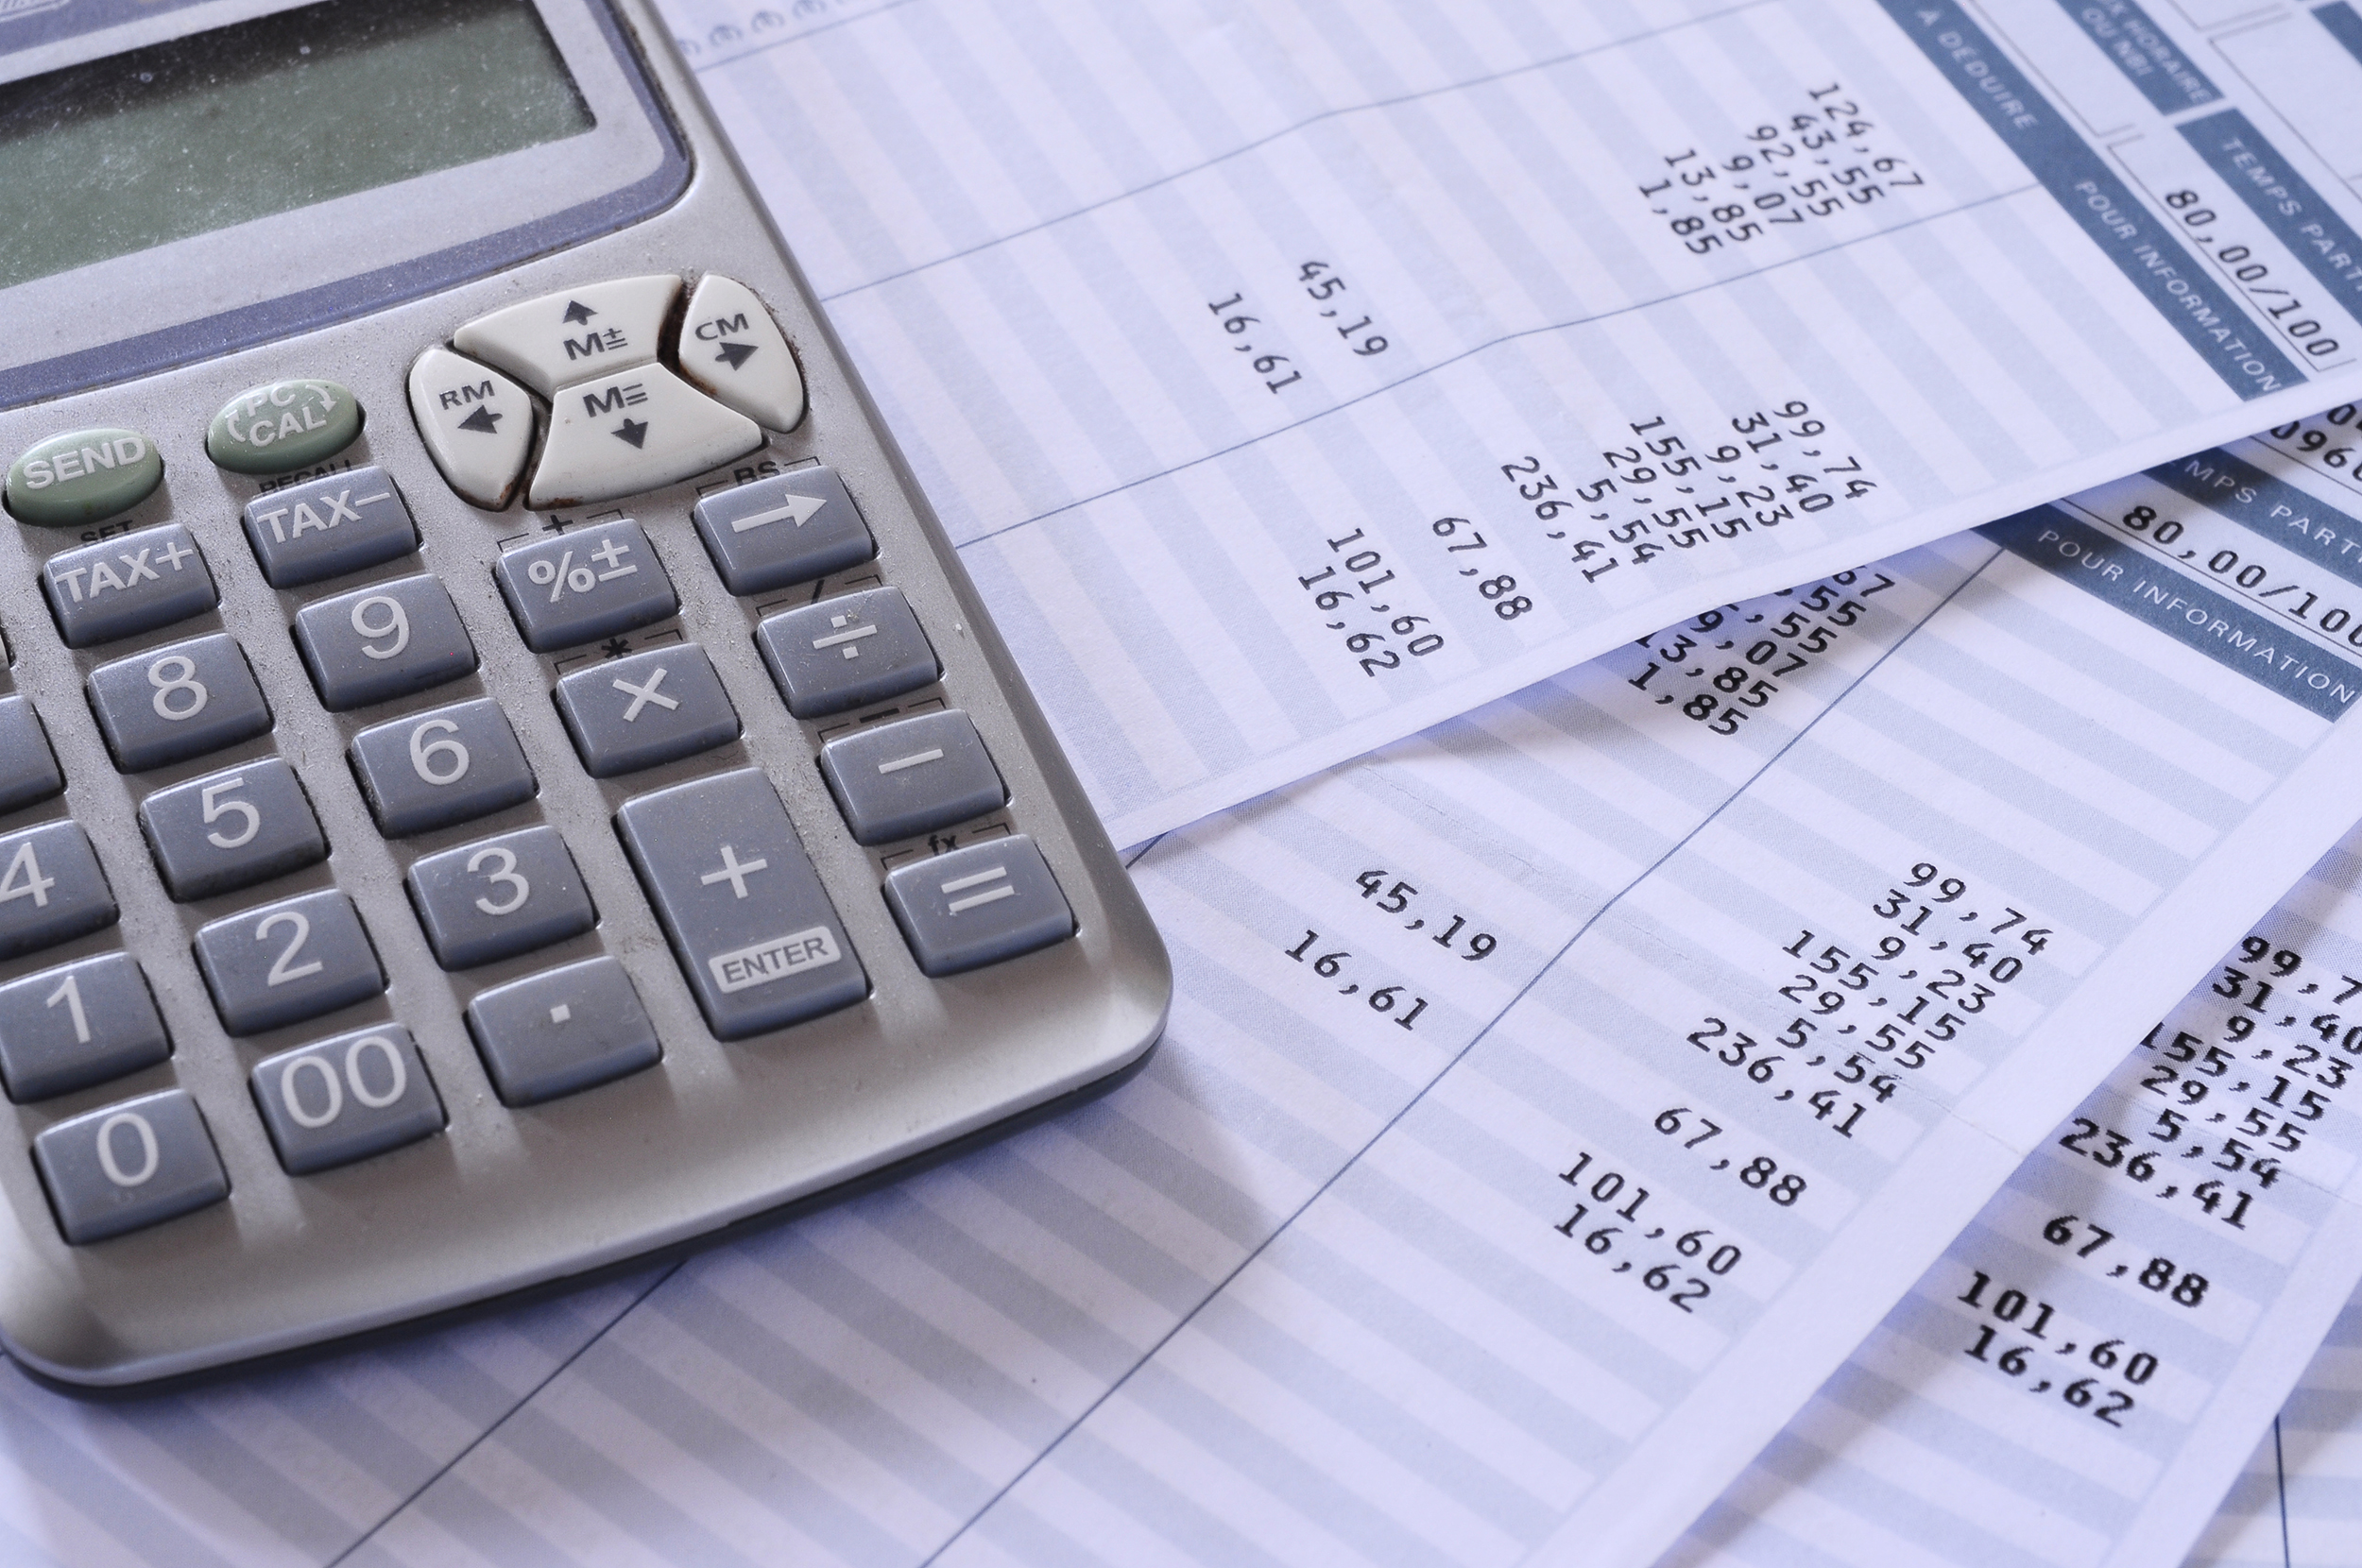 ACCOUNTABLE EXPENSE PLANS